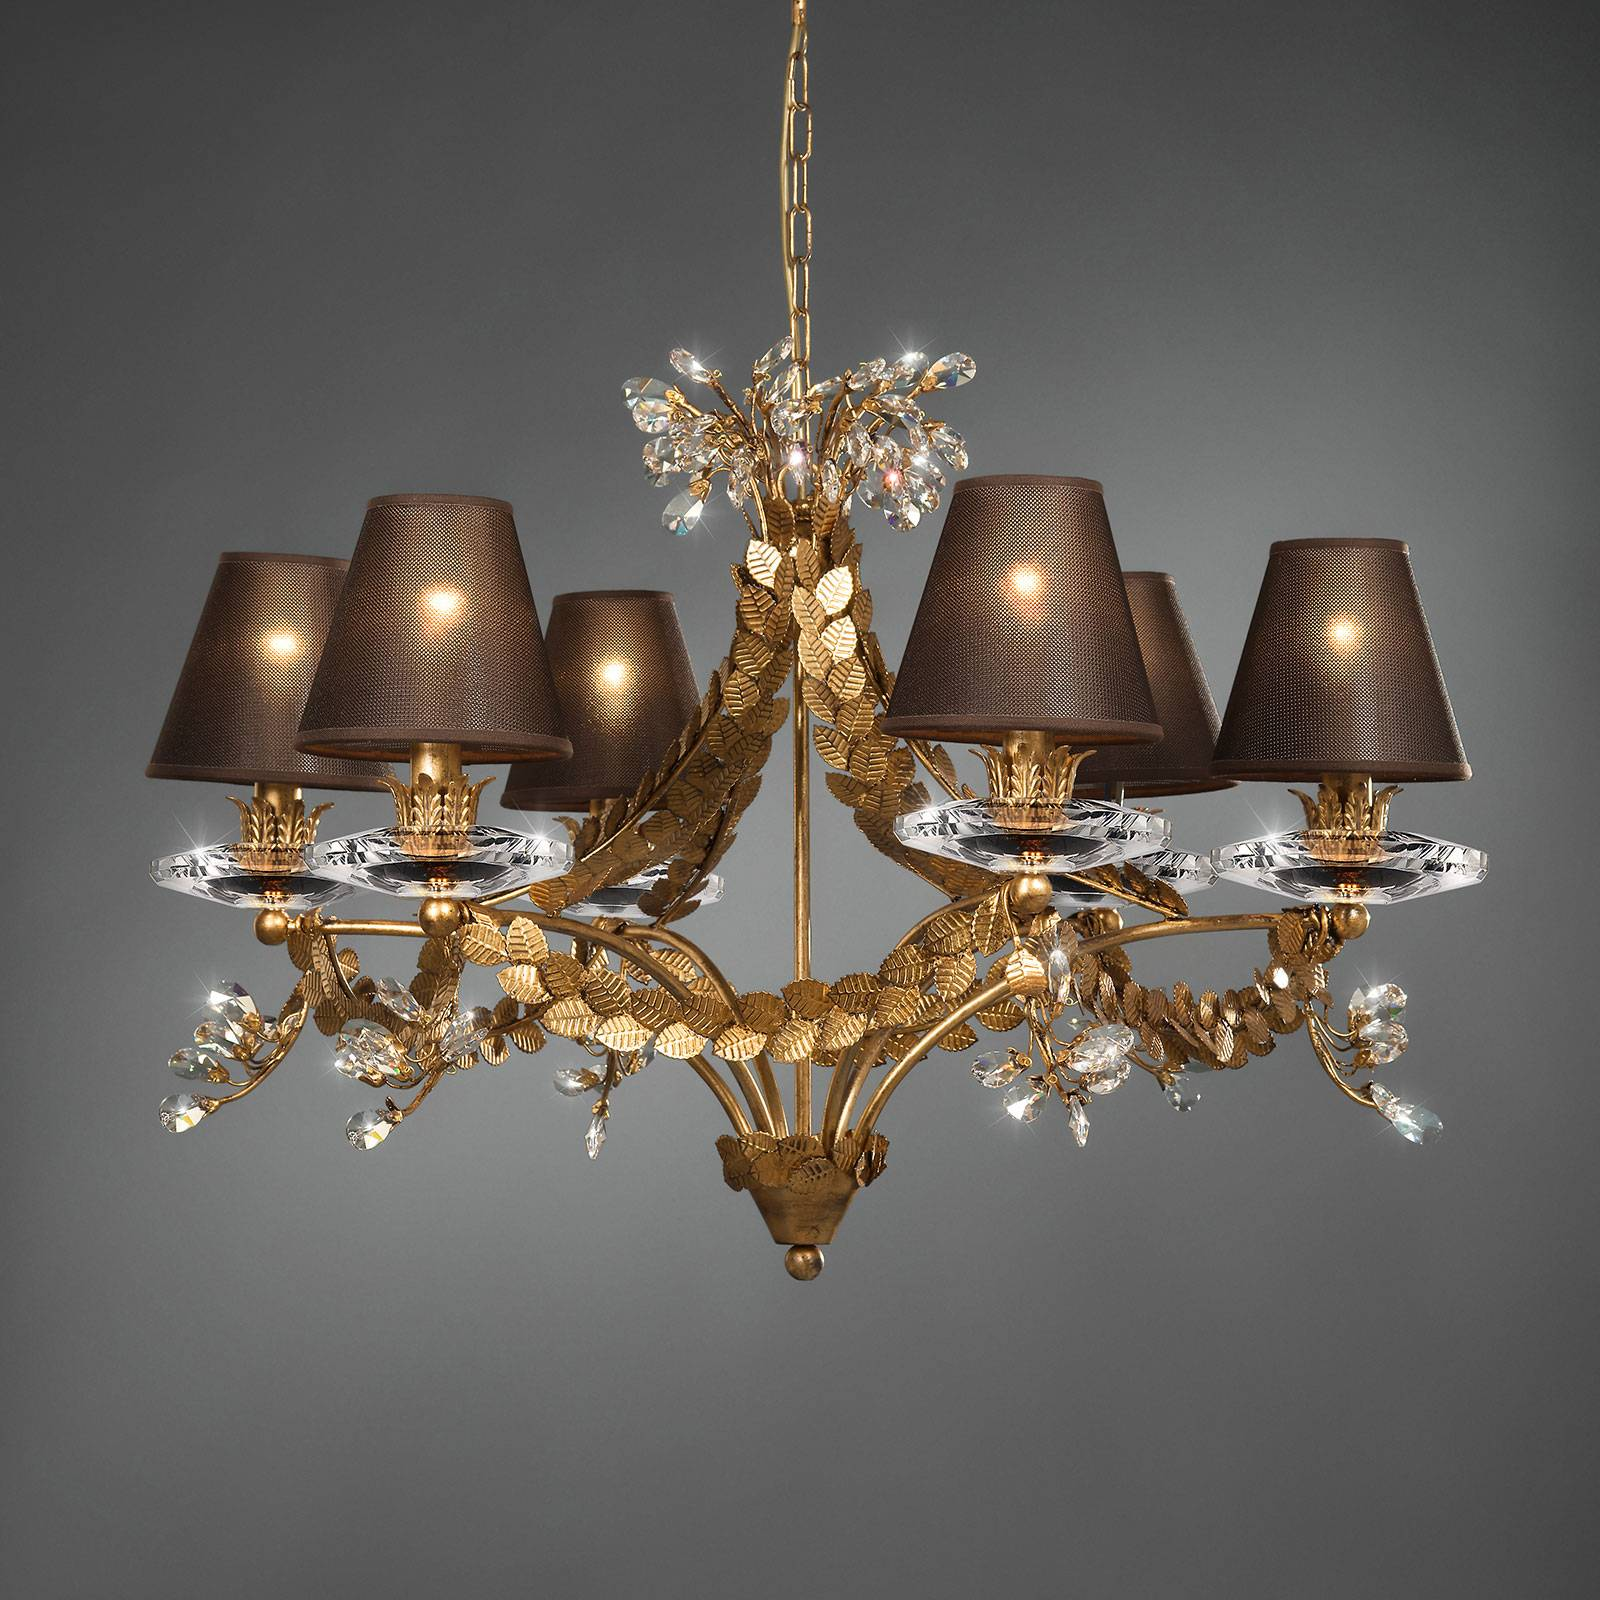 Foliage - noble chandelier with leaf decoration from Ferro Luce